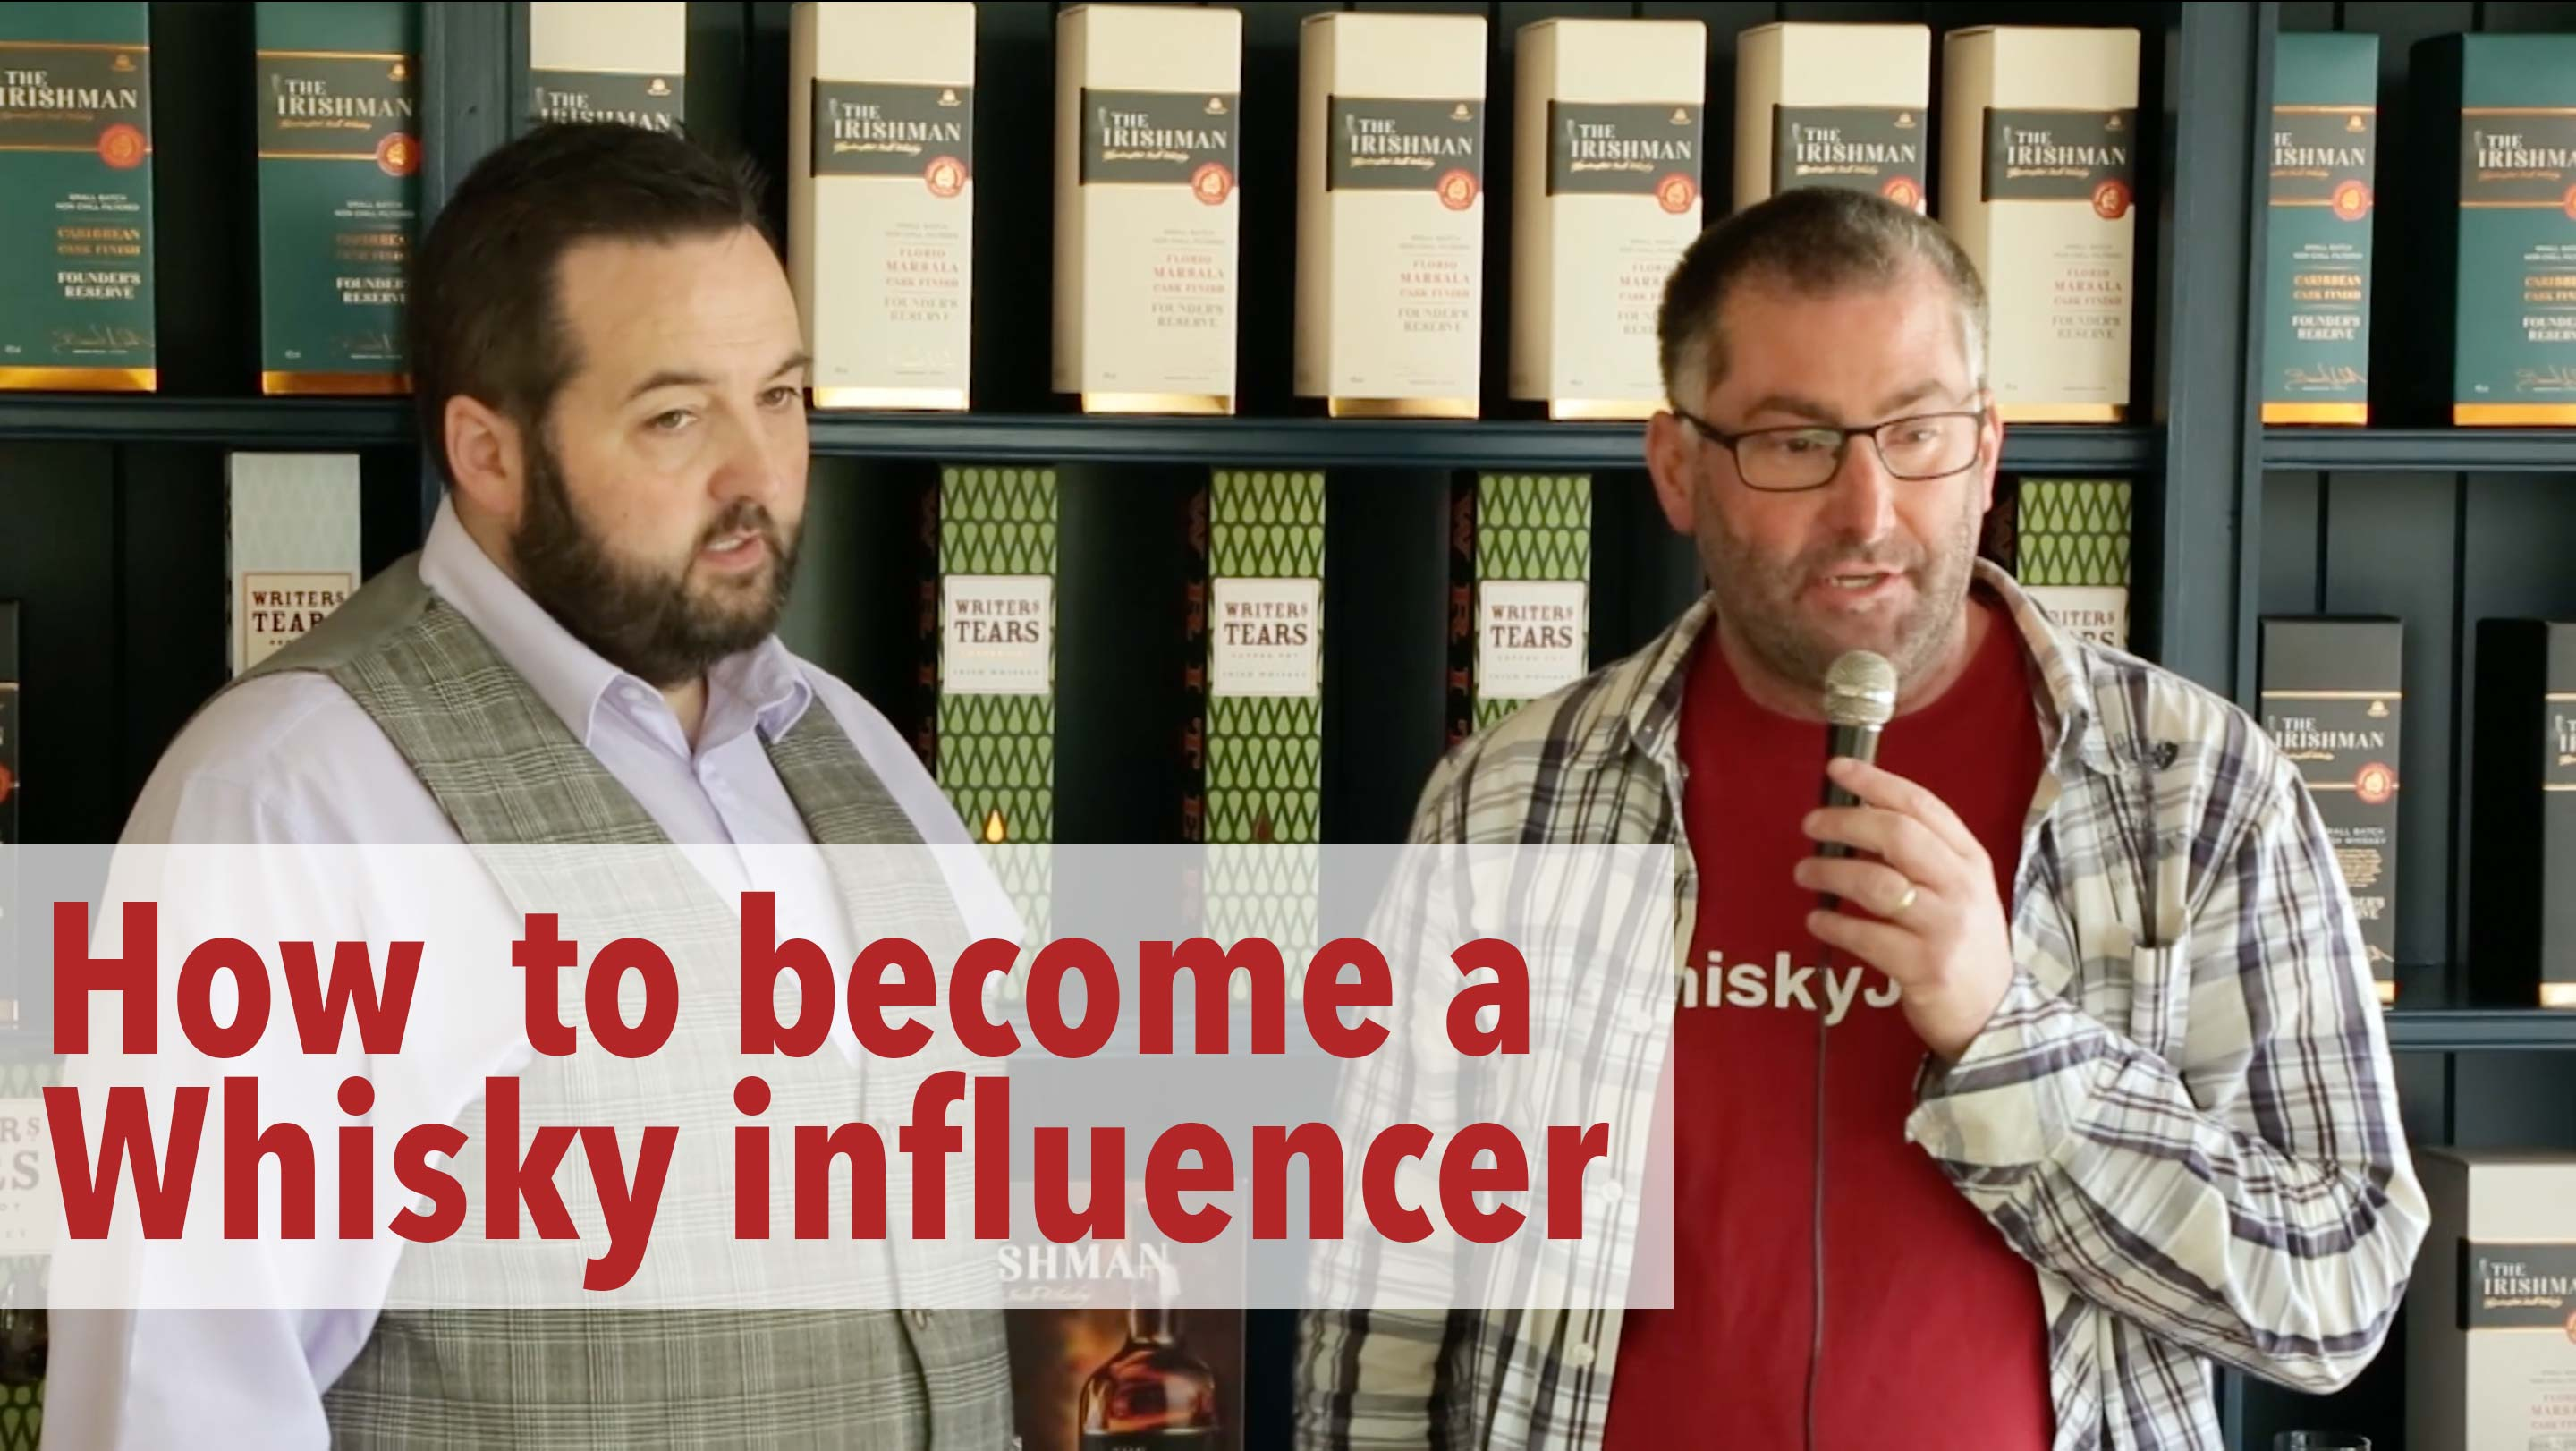 How to become a Whisky influencer!